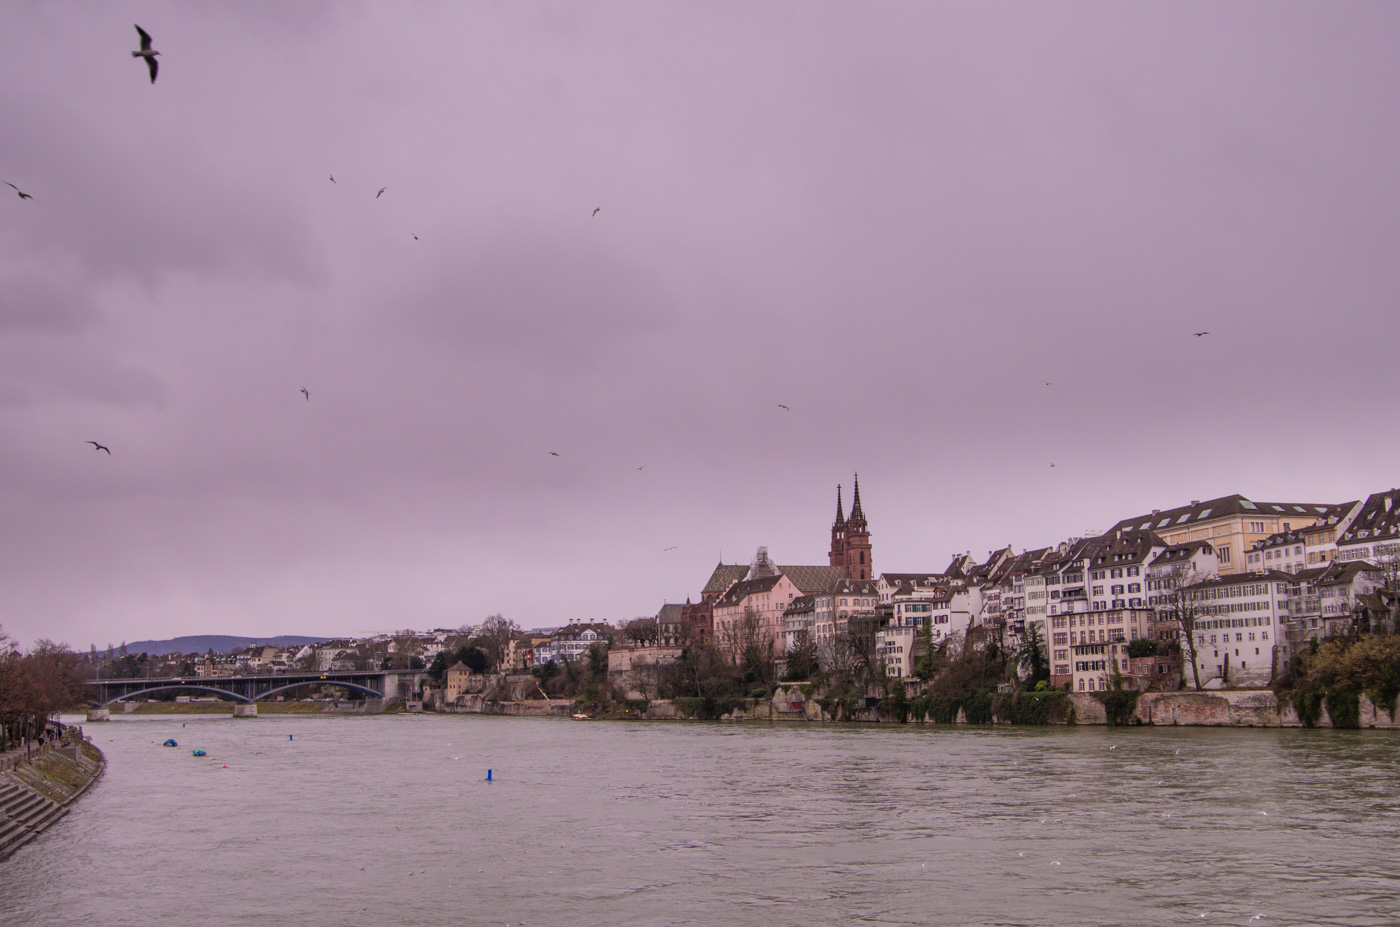 View towards Basel's old-town over the Rhine river.